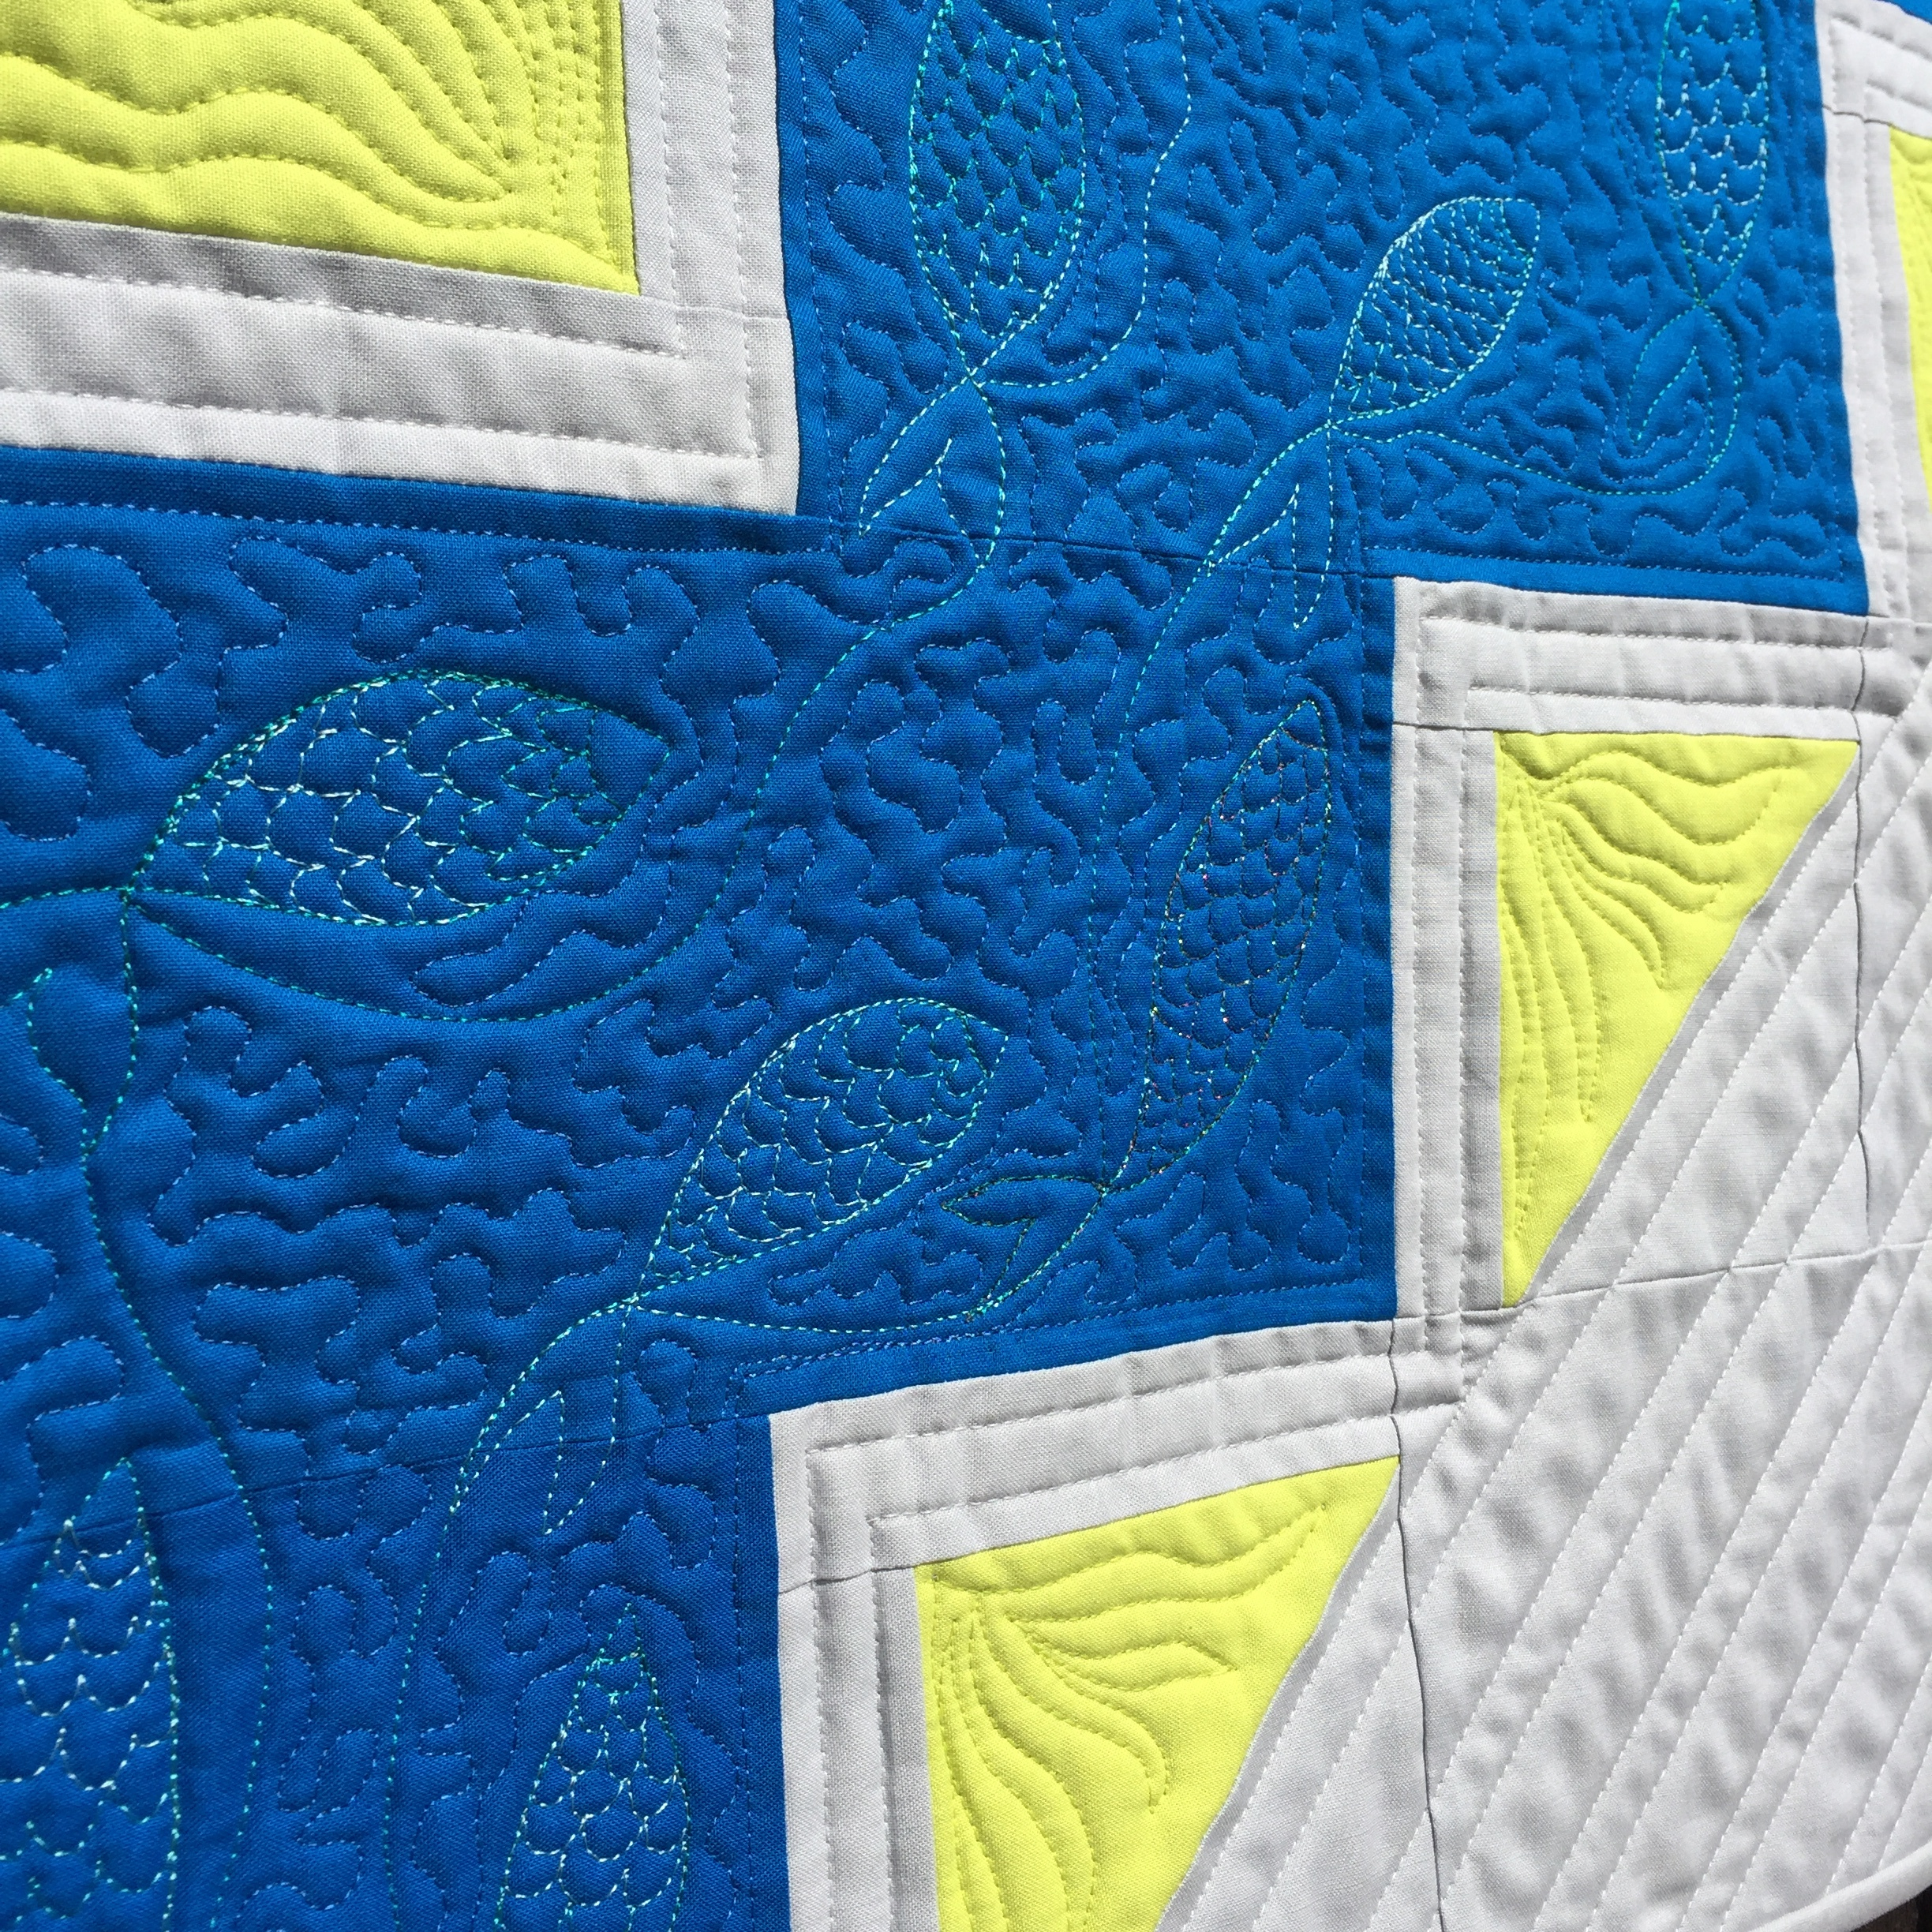 Baby Quilt The Crafty Nomad fish quilting